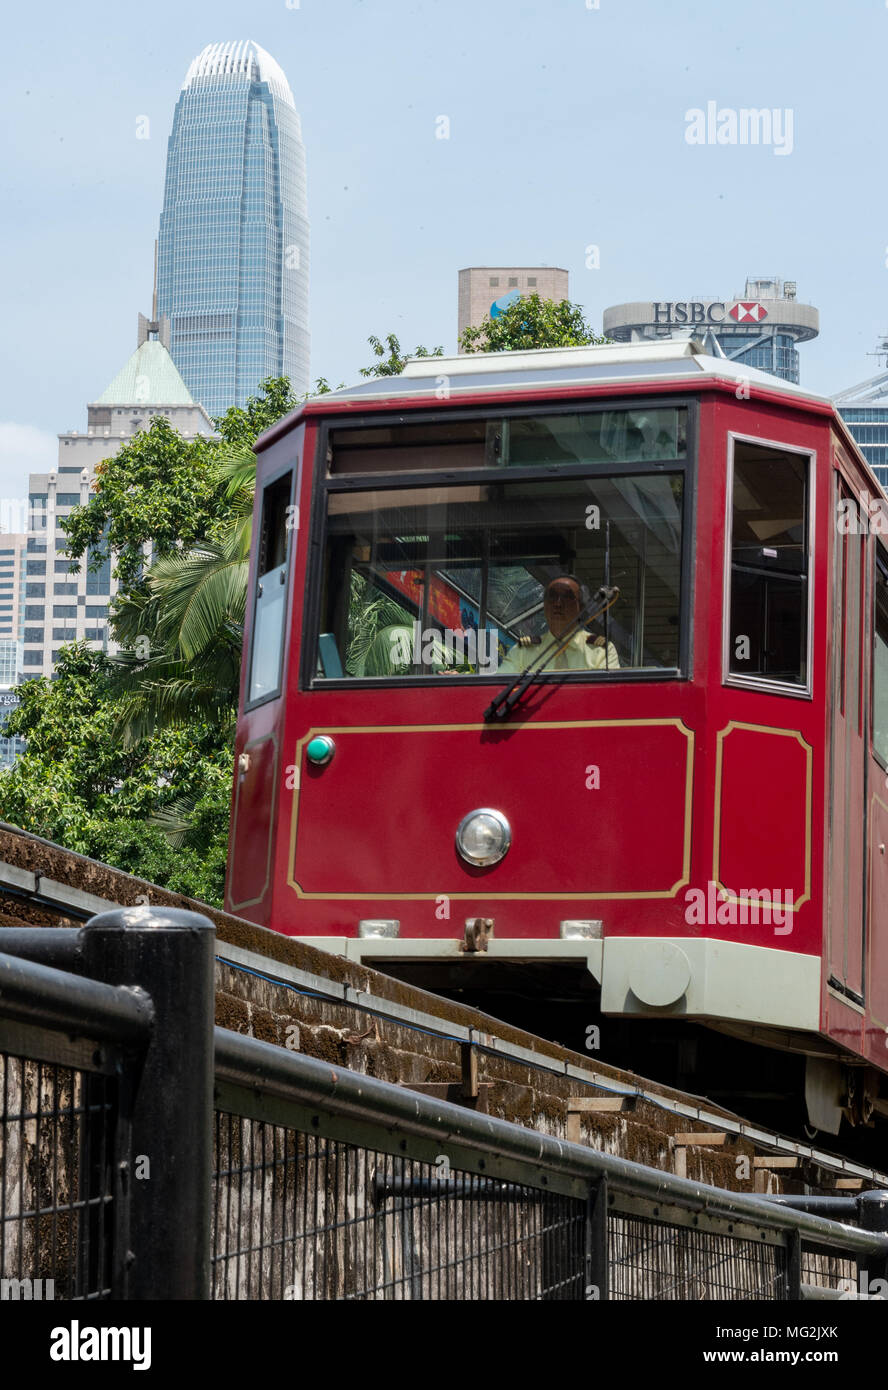 HONG KONG, CHINA - APRIL 01,2018: Peak Tram, The Peak Hong Kong.The Peak Tram is the world's steepest funicular railway and over 120 years old.Running - Stock Image